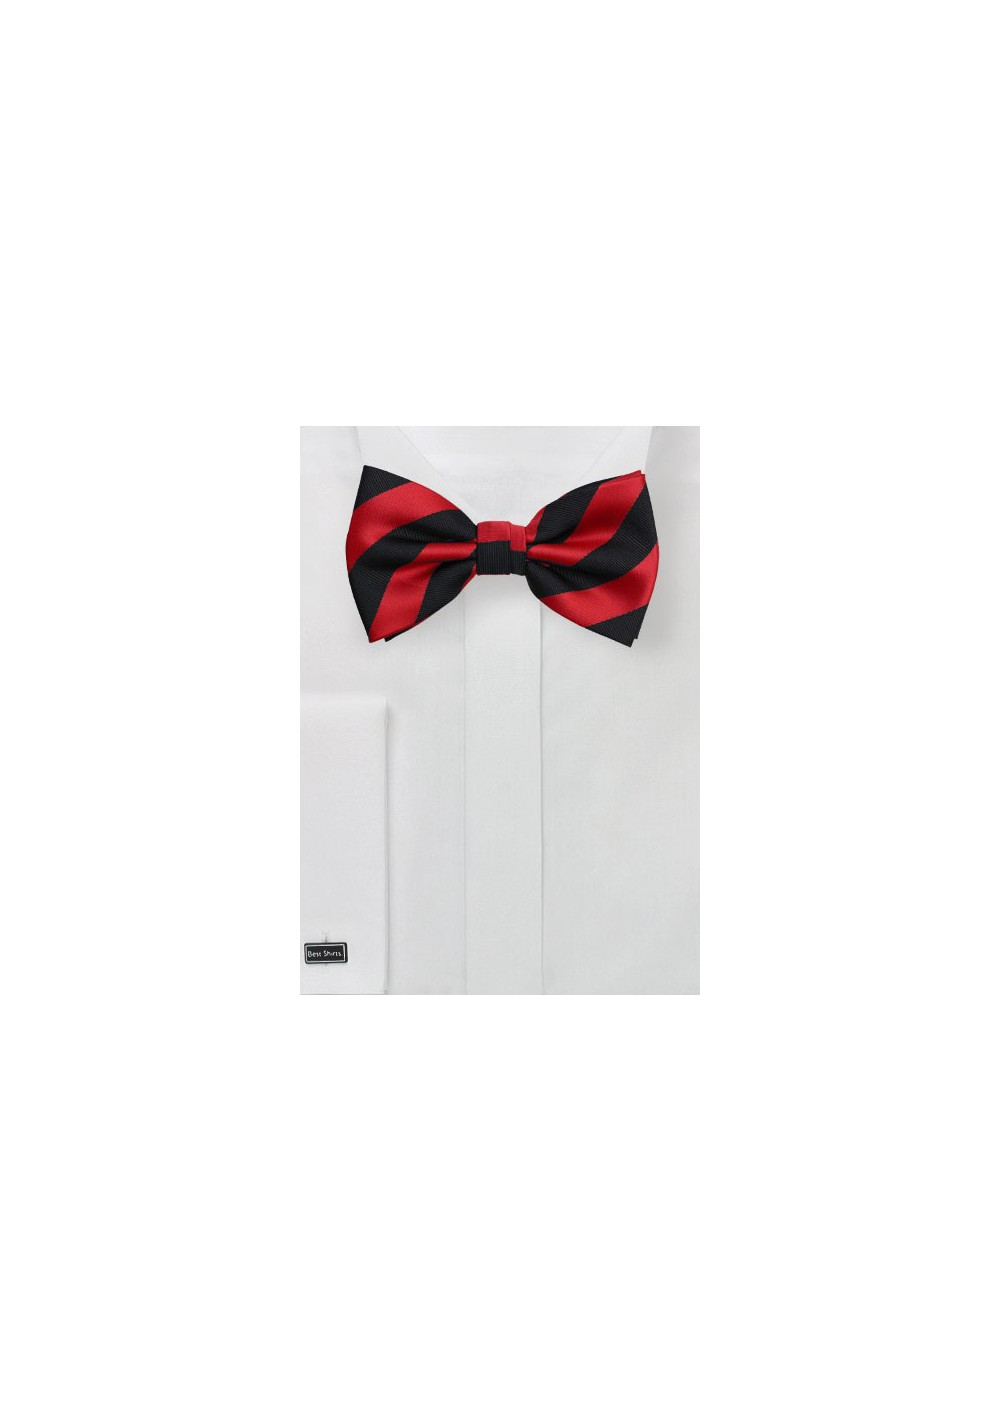 Striped Bow Tie in Black and Red